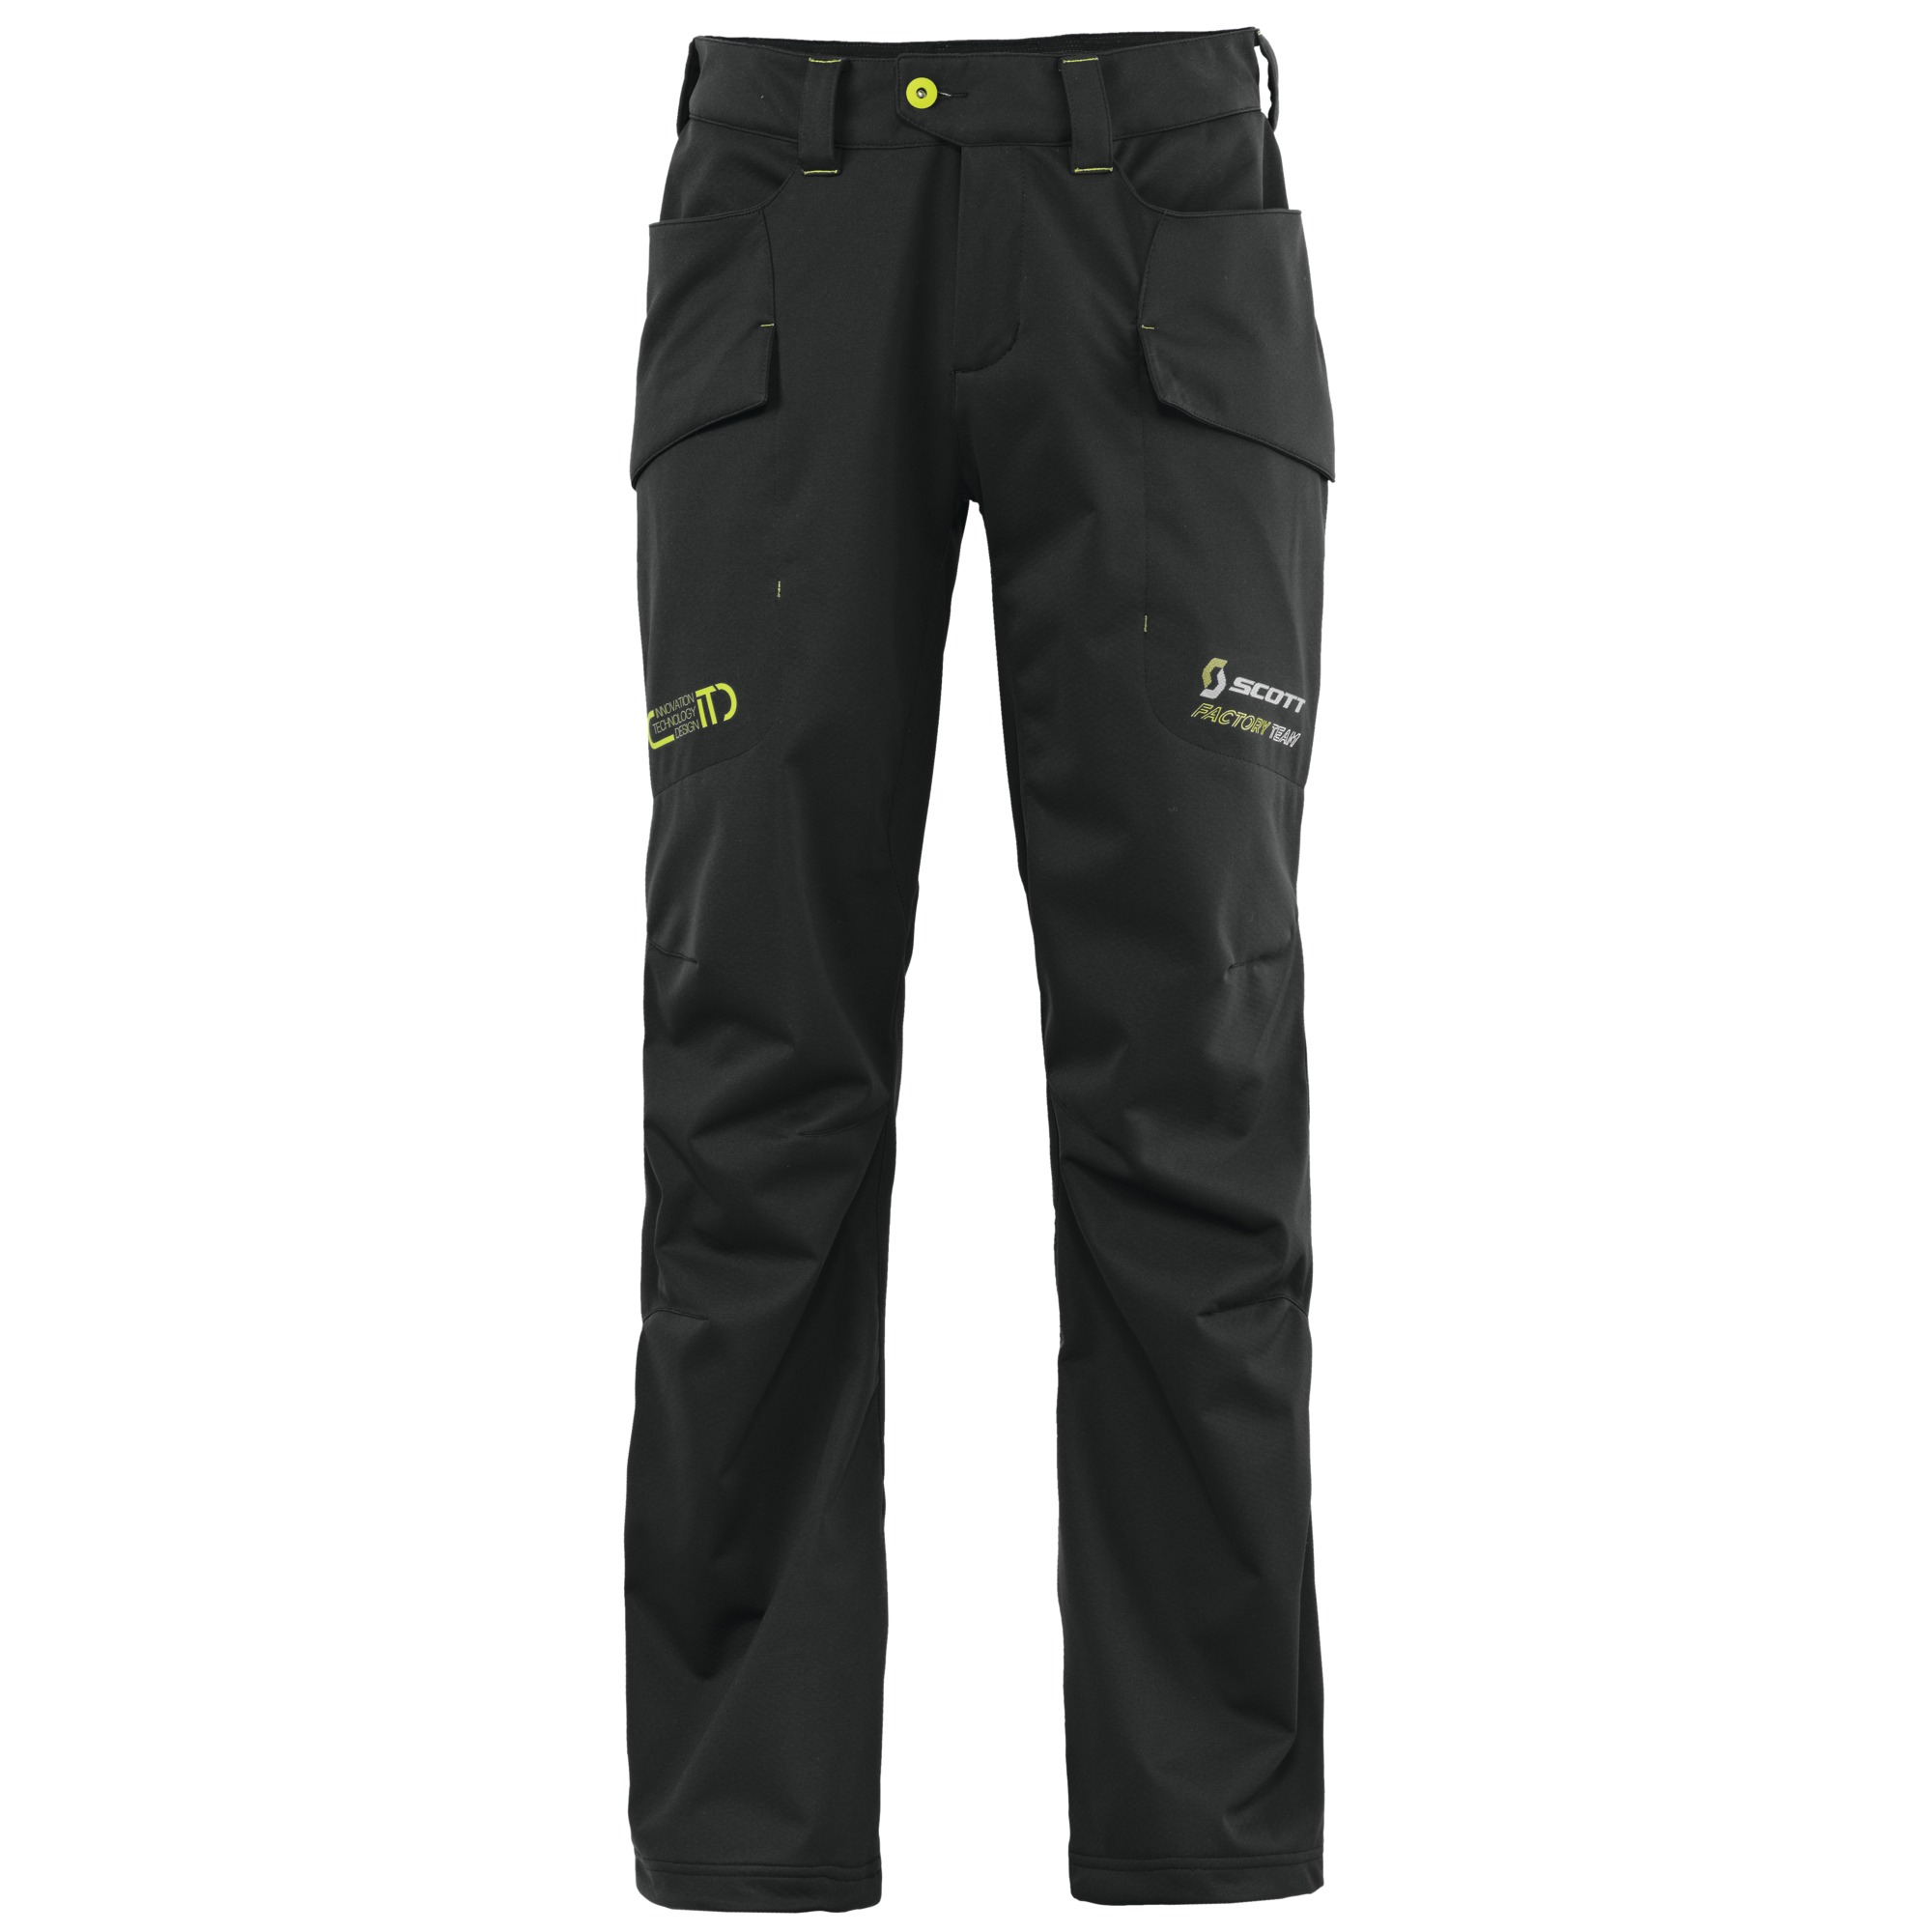 SCOTT FACTORY TEAM SOFTSHELL PANTS